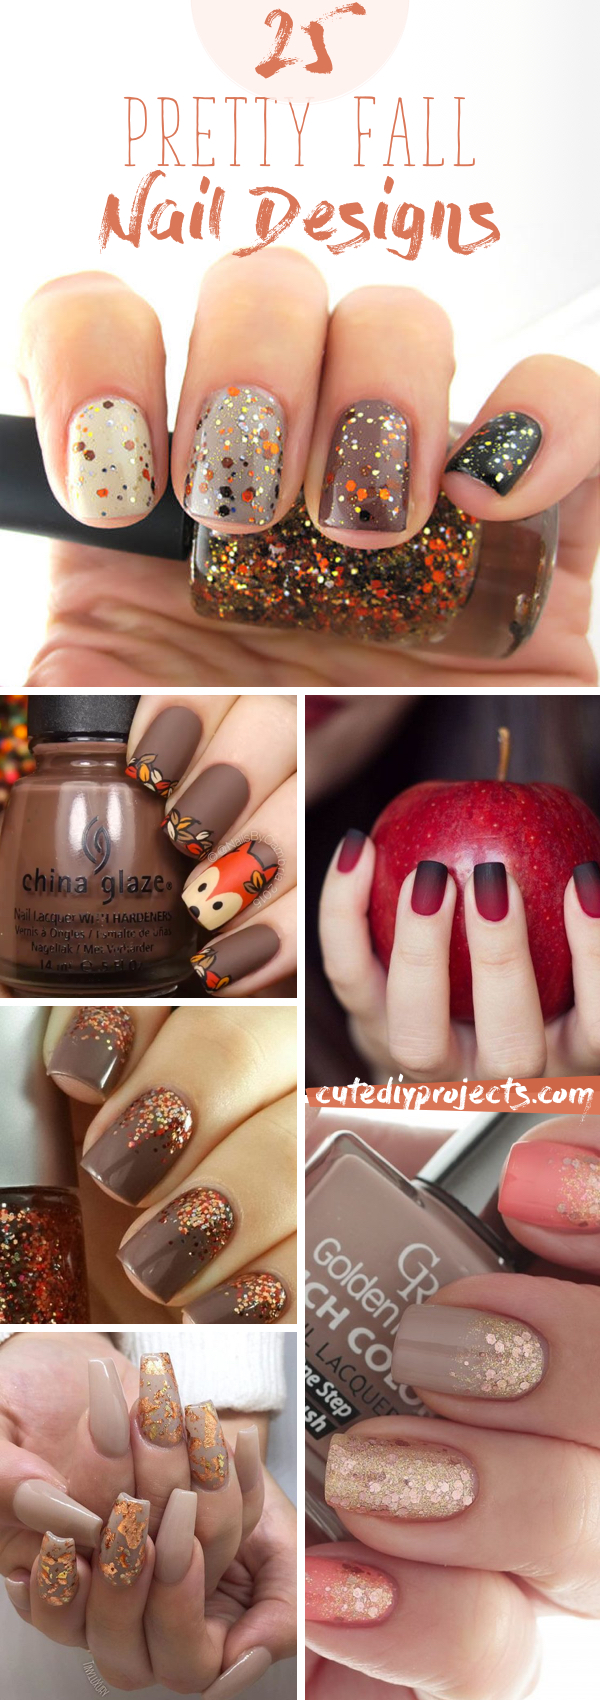 Beautiful autumn nail designs that let you celebrate autumn with your fingertips